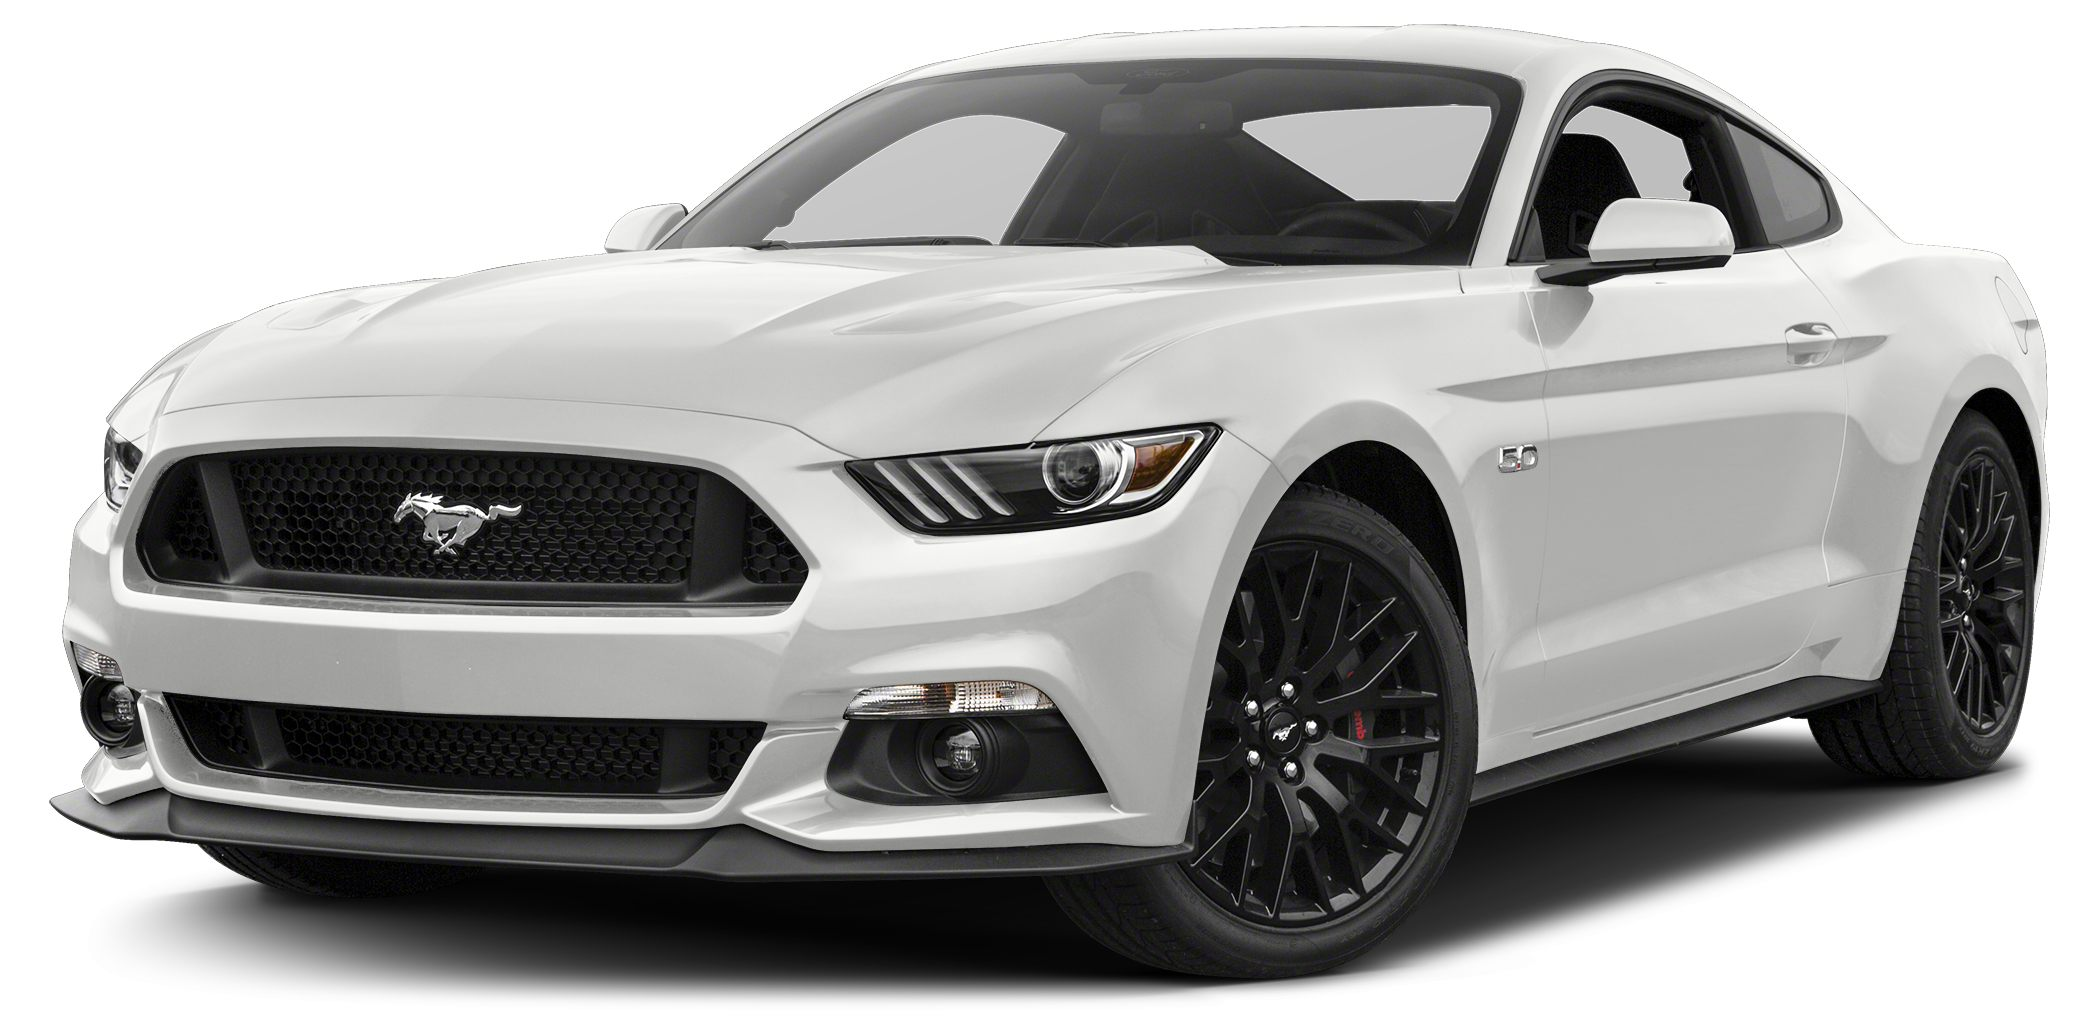 2017 Ford Mustang GT Premium The Ford Mustang is an American classic that lives on The body has b